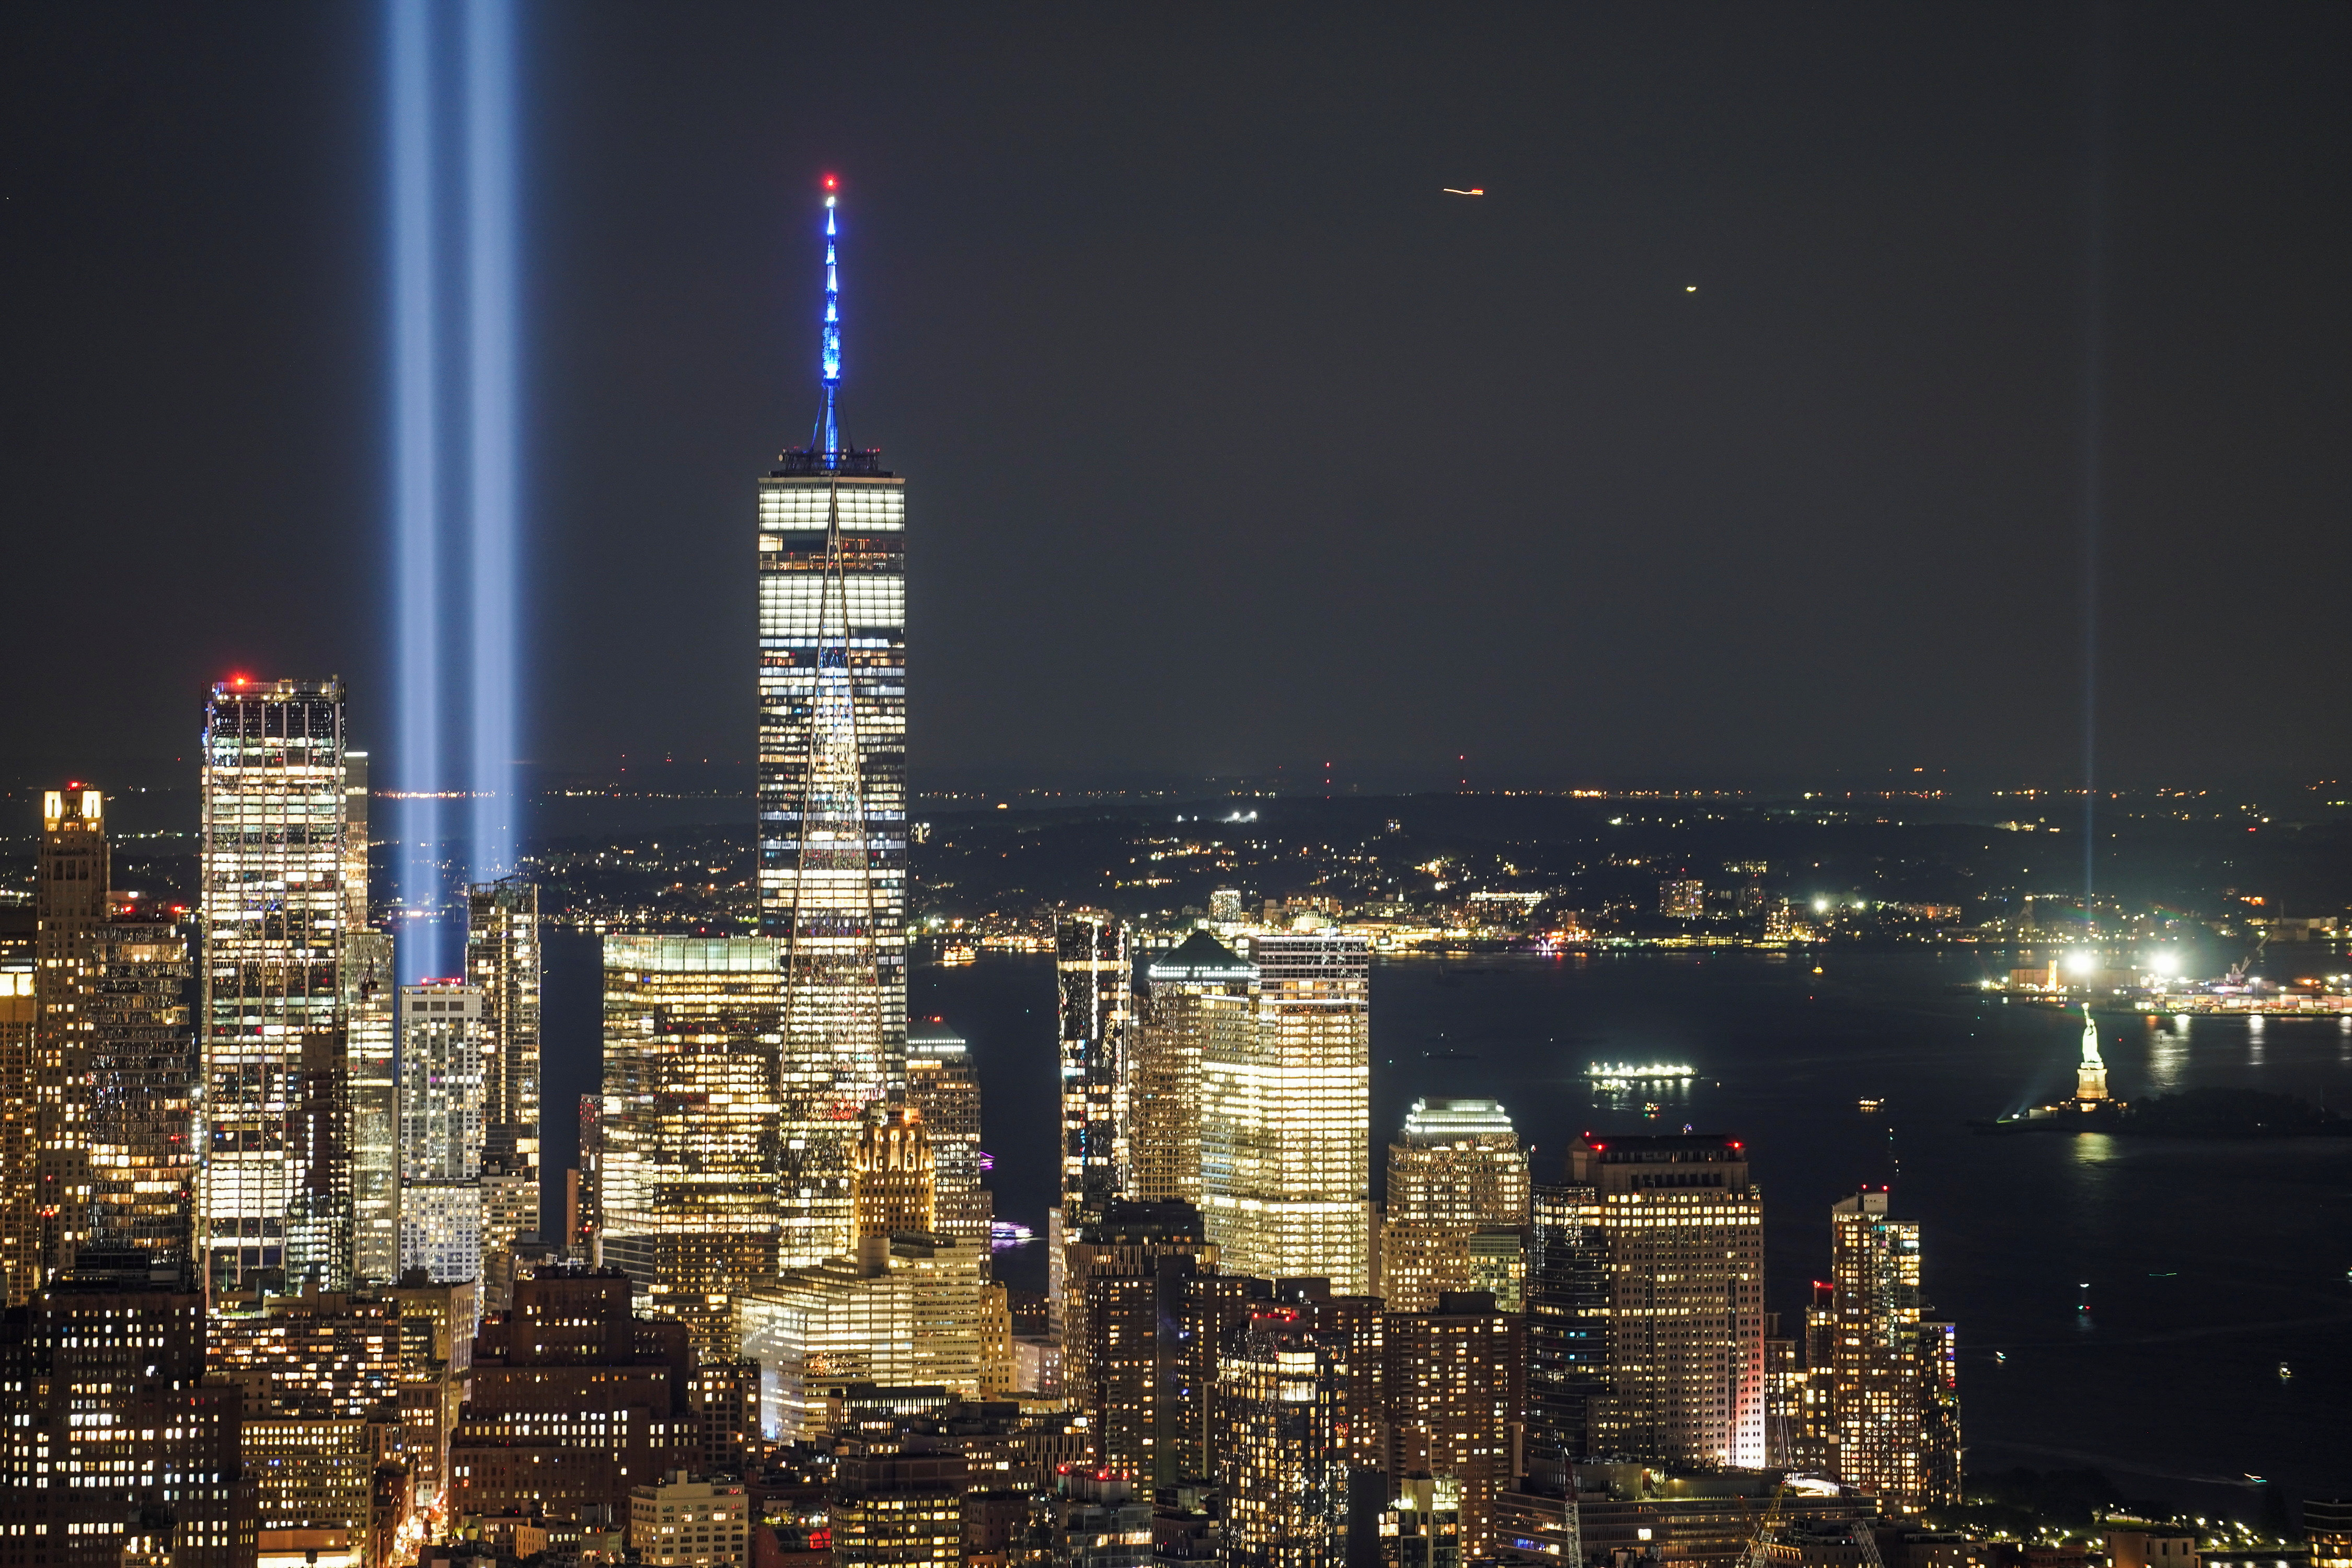 The Tribute in Light art installation is seen from Empire State Building, commemorating the 20th anniversary of the September 11, 2001 attacks, in New York City, New York, U.S., September 11, 2021. REUTERS/Go Nakamura